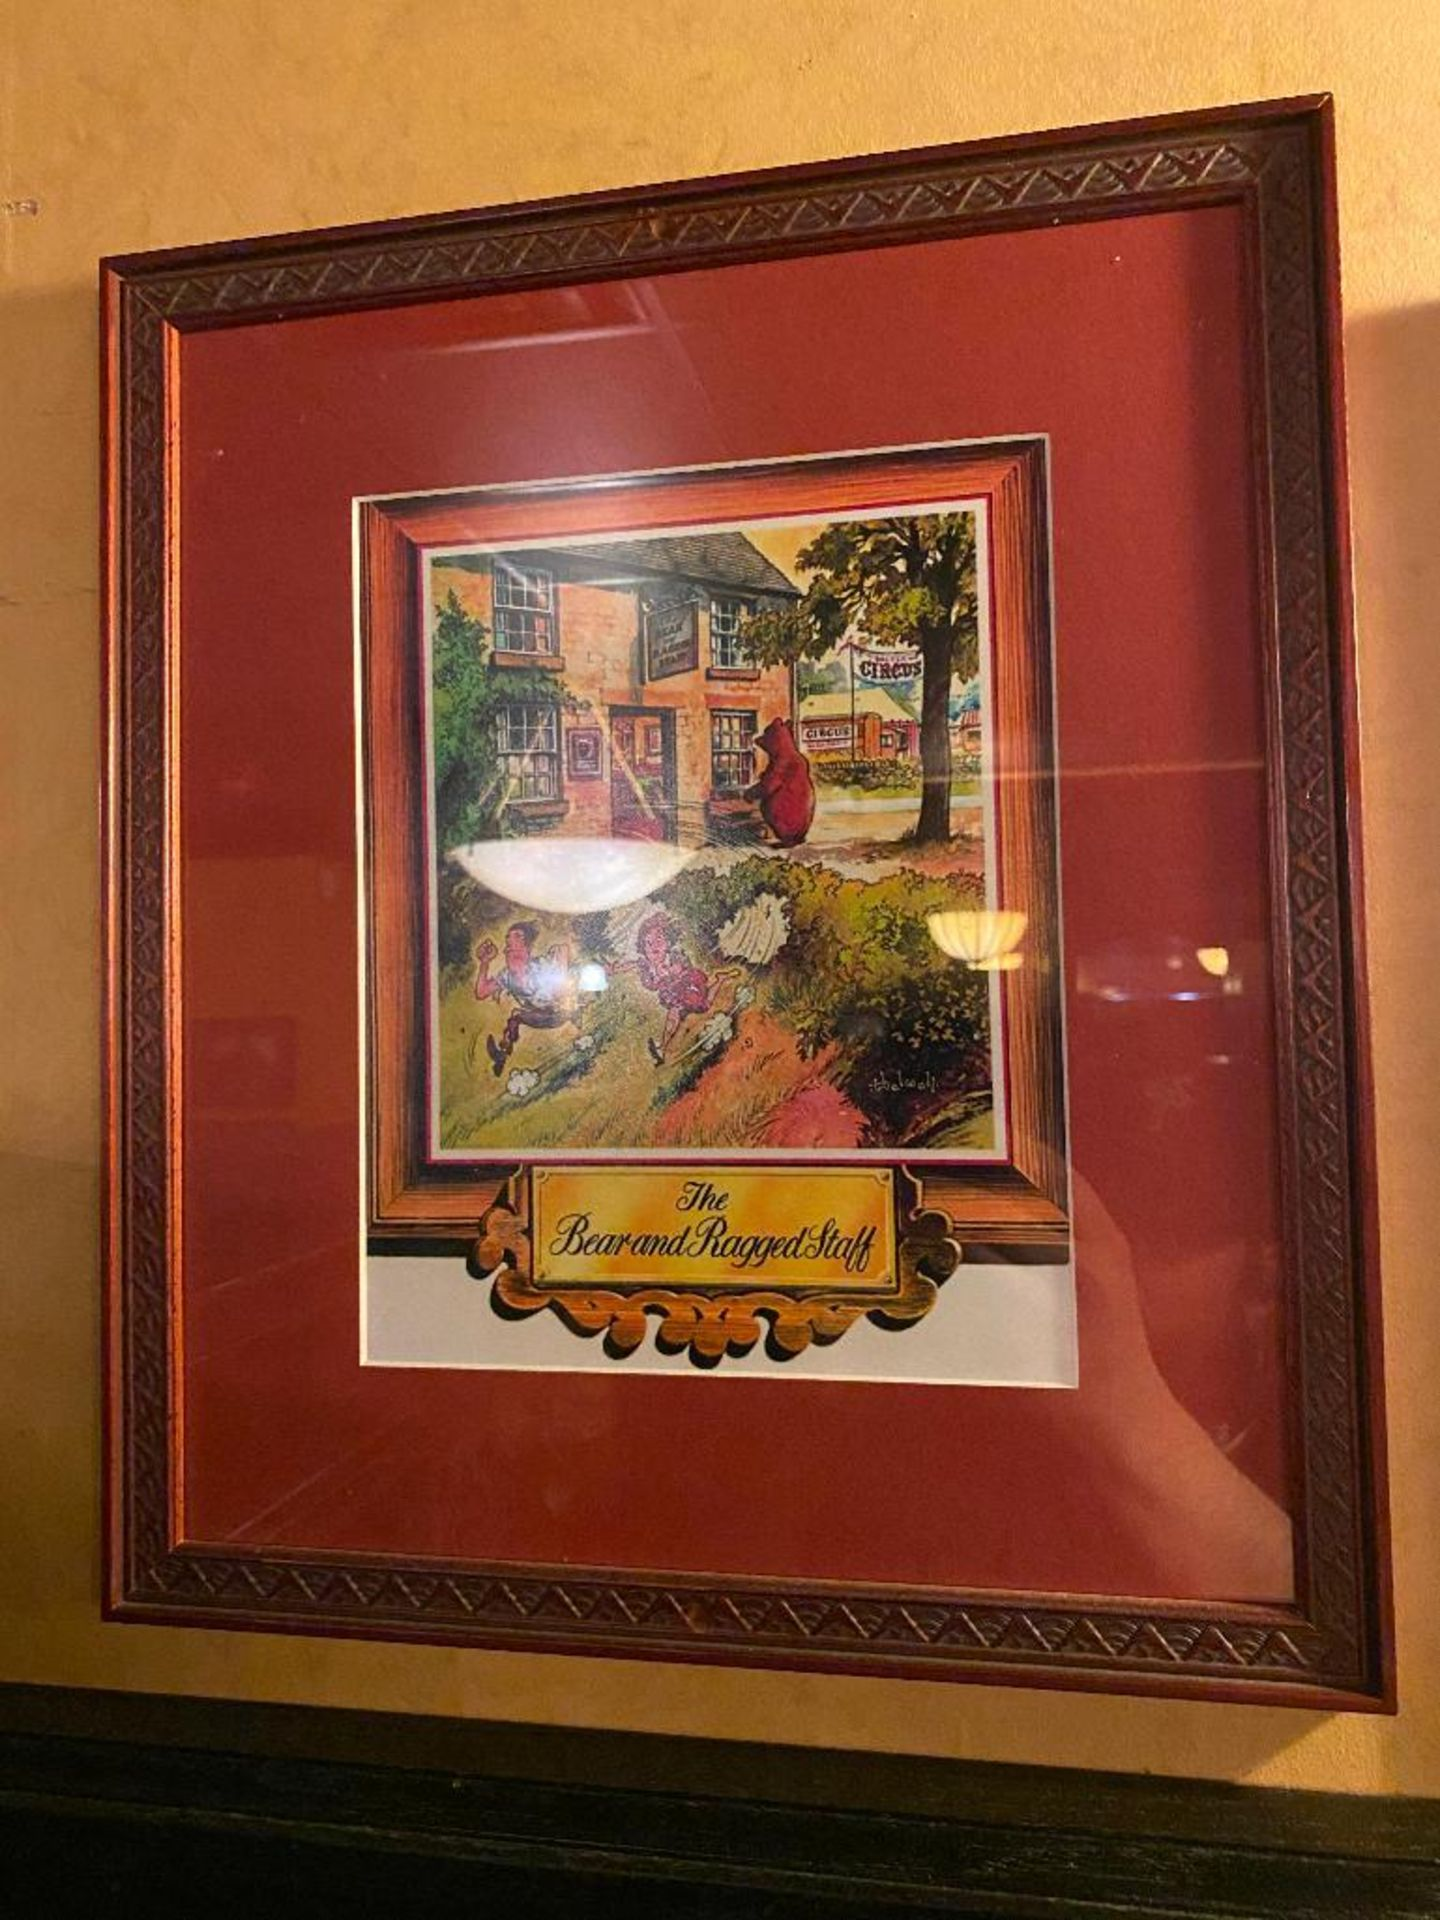 LOT OF (2) FRAMED MEMORABILIA PHOTOS & (1) SMITHWICK'S MIRROR - NOTE: REQUIRES REMOVAL FROM WALL, PL - Image 2 of 4